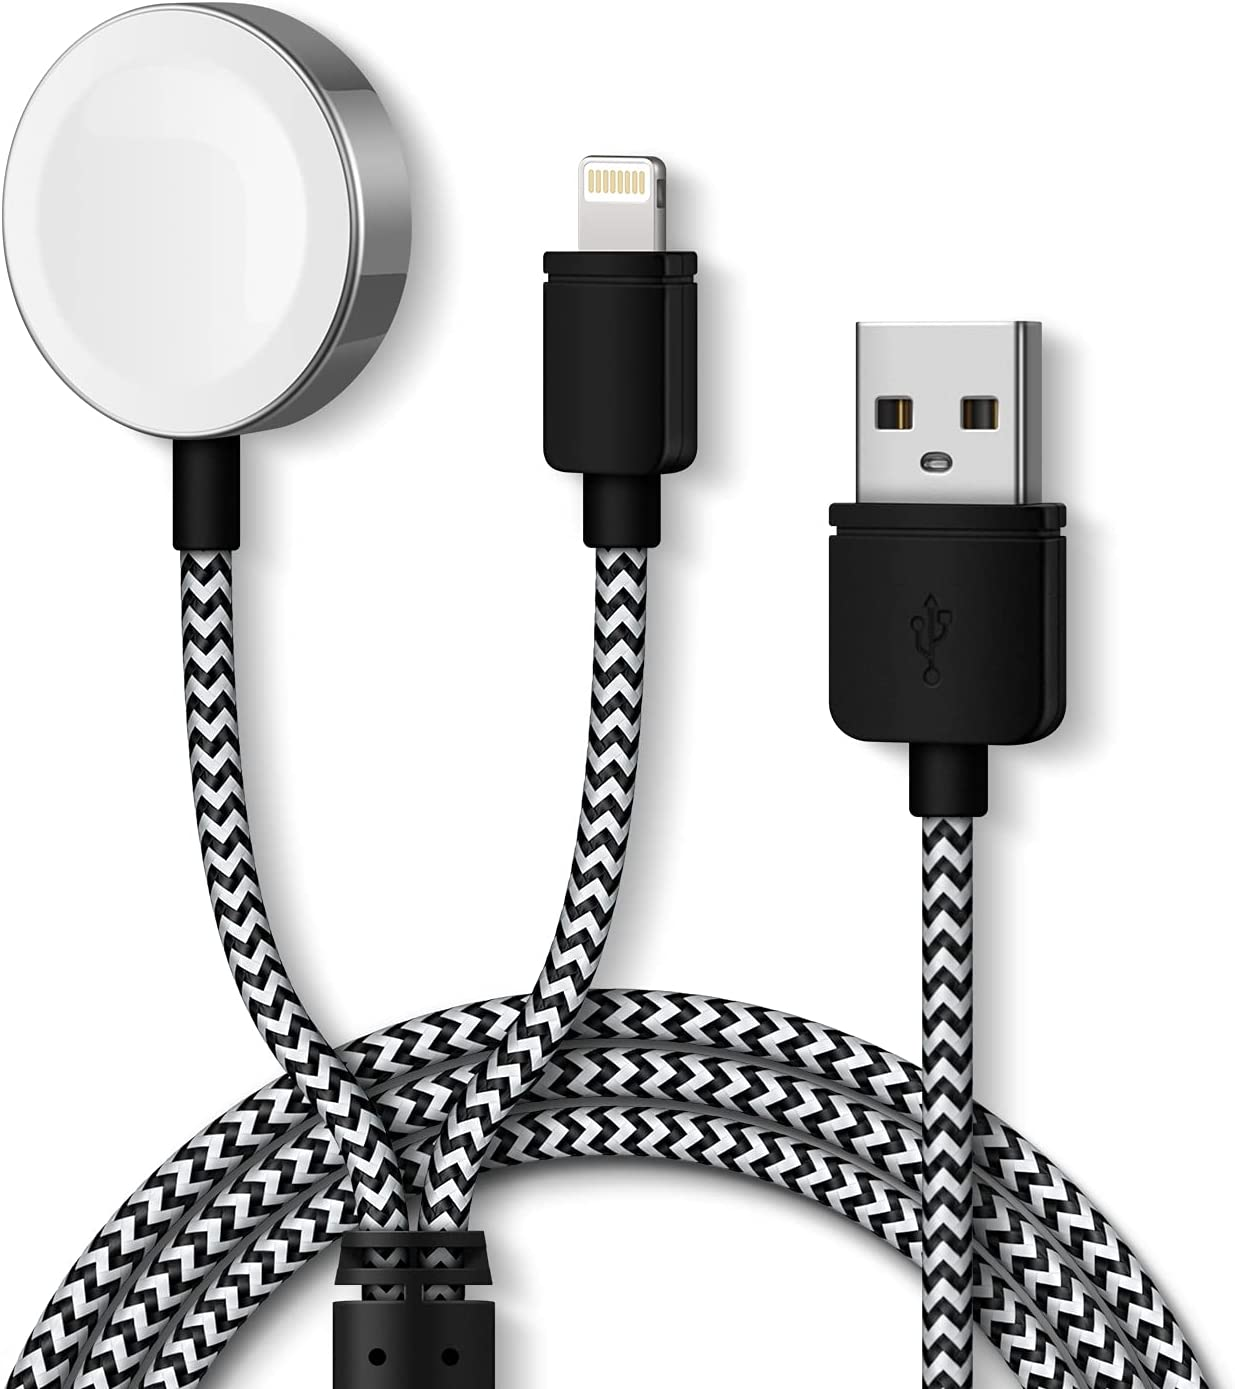 CulaLuva Smart Watch Charger,Magnetic Charging Cable 5.0ft/1.5M for iWatch Charger Compatible with Apple Watch Series SE/6/5/4/3/2/1 & Phone 12/11/Pro/Max/XR/XS/XS Max/X&Pad Series